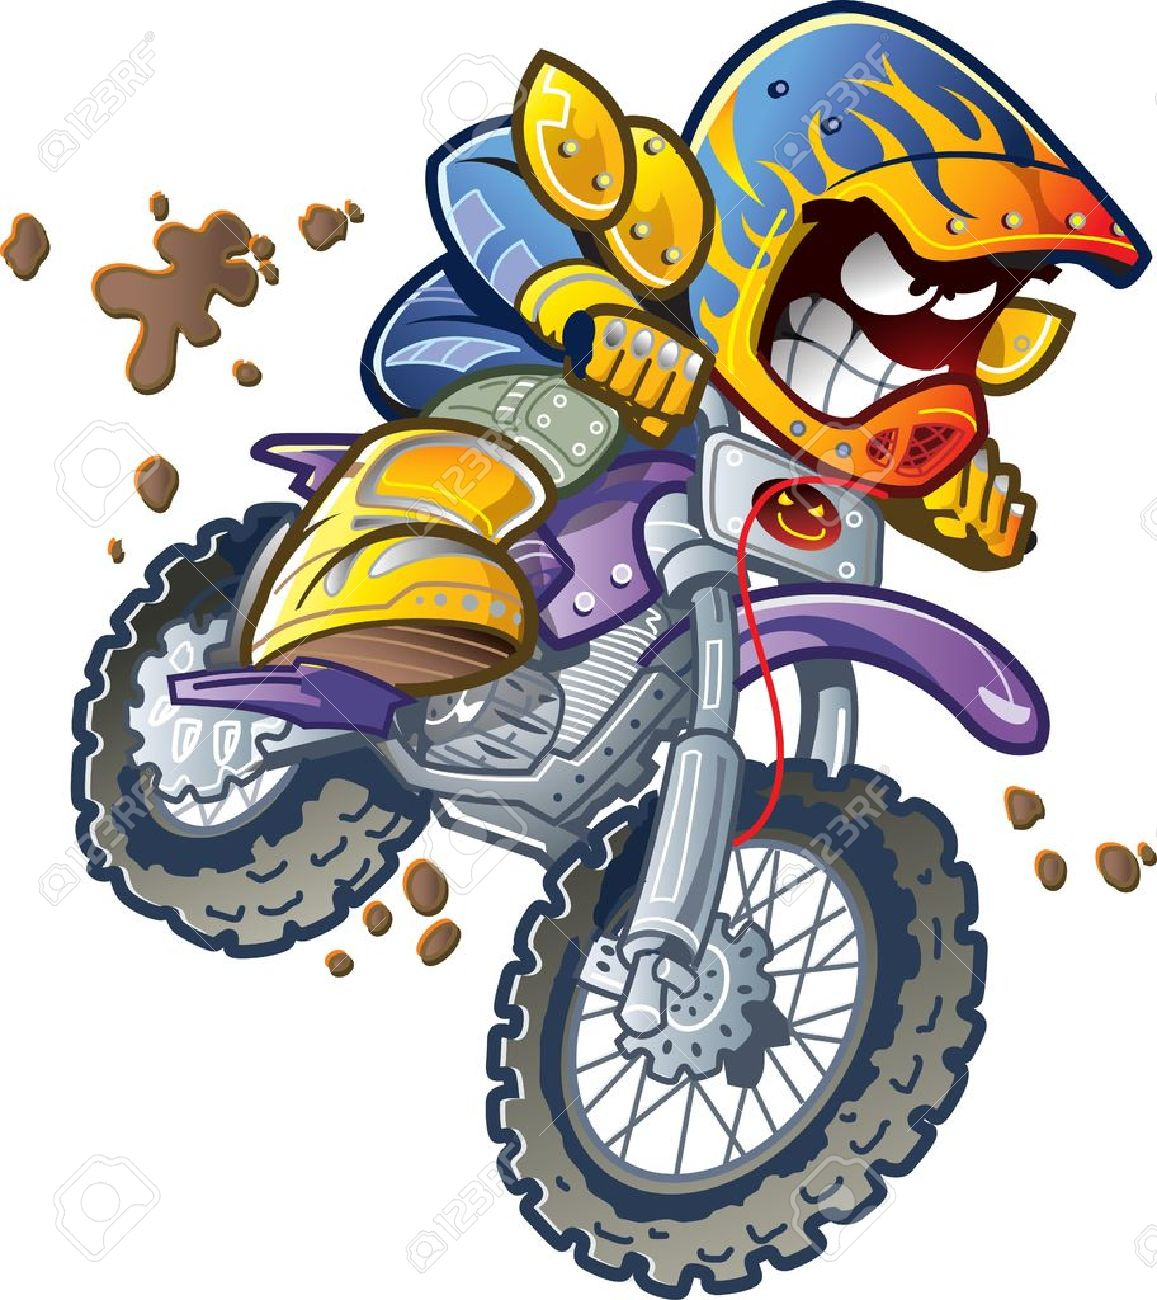 Motorcycle clip art with flames - Motorcycle Rider Dirt Bike Motorcycle Rider Making An Extreme Jump And Splashing In The Mud